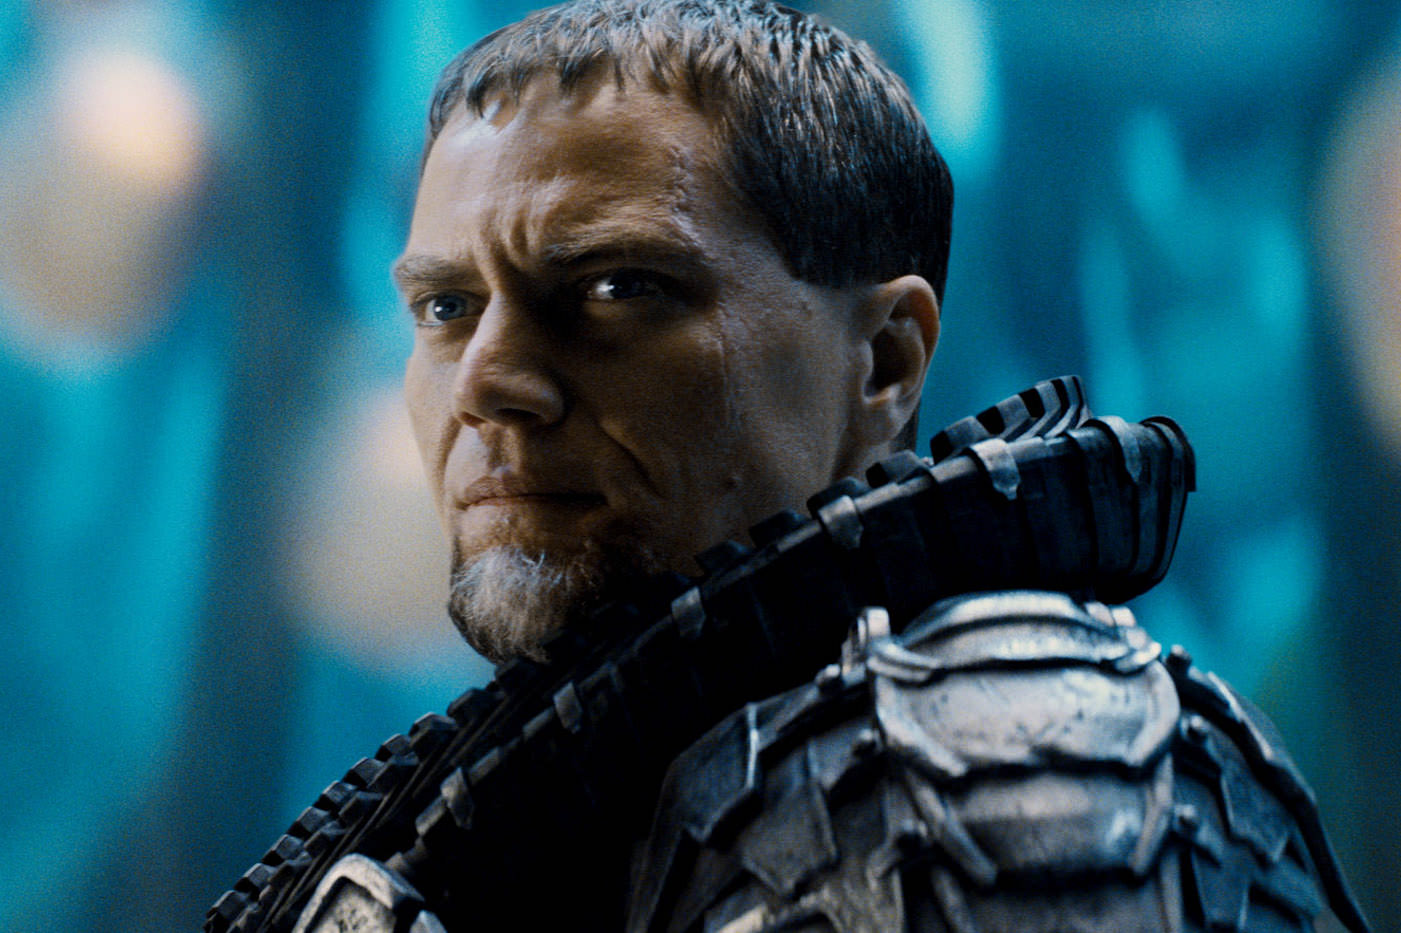 Man of steel michael shannon snyder